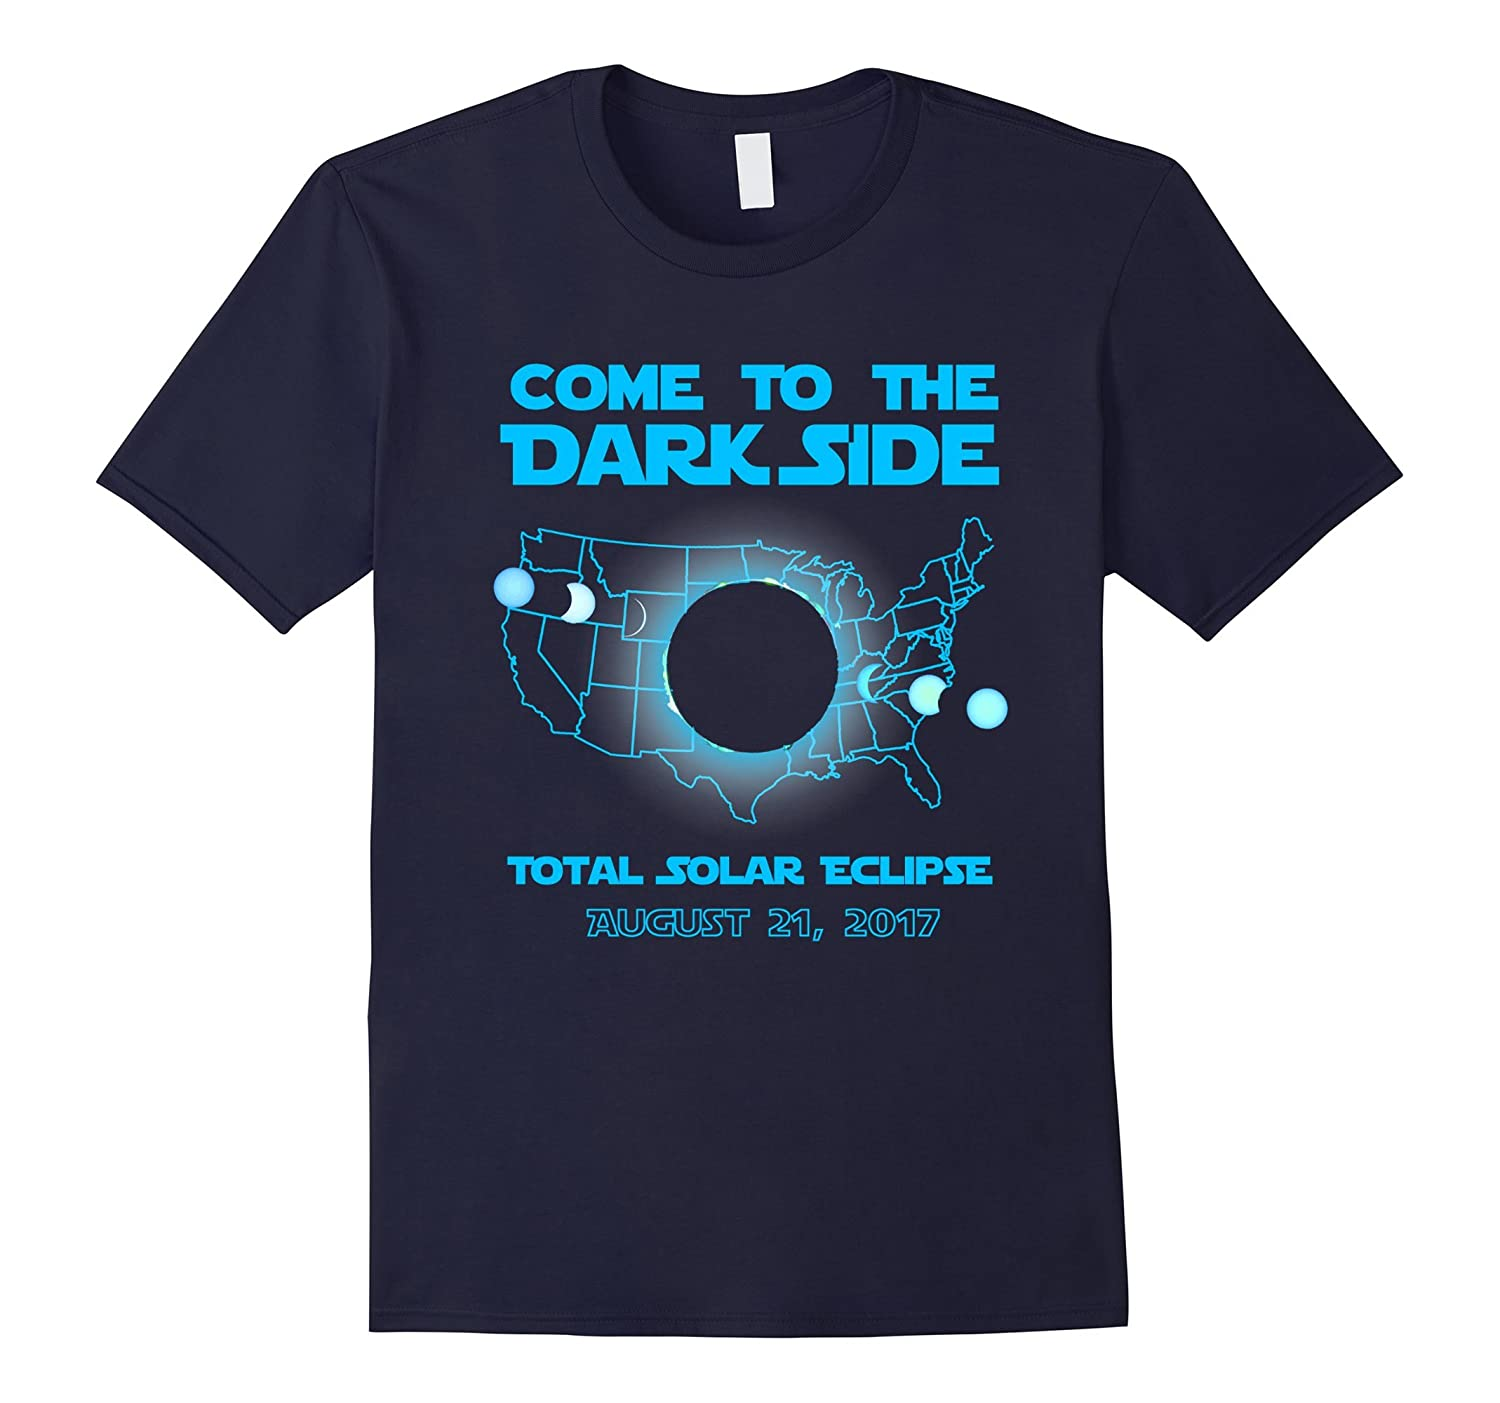 Total Solar Eclipse 2017 - Come to The Dark Side Theme-BN